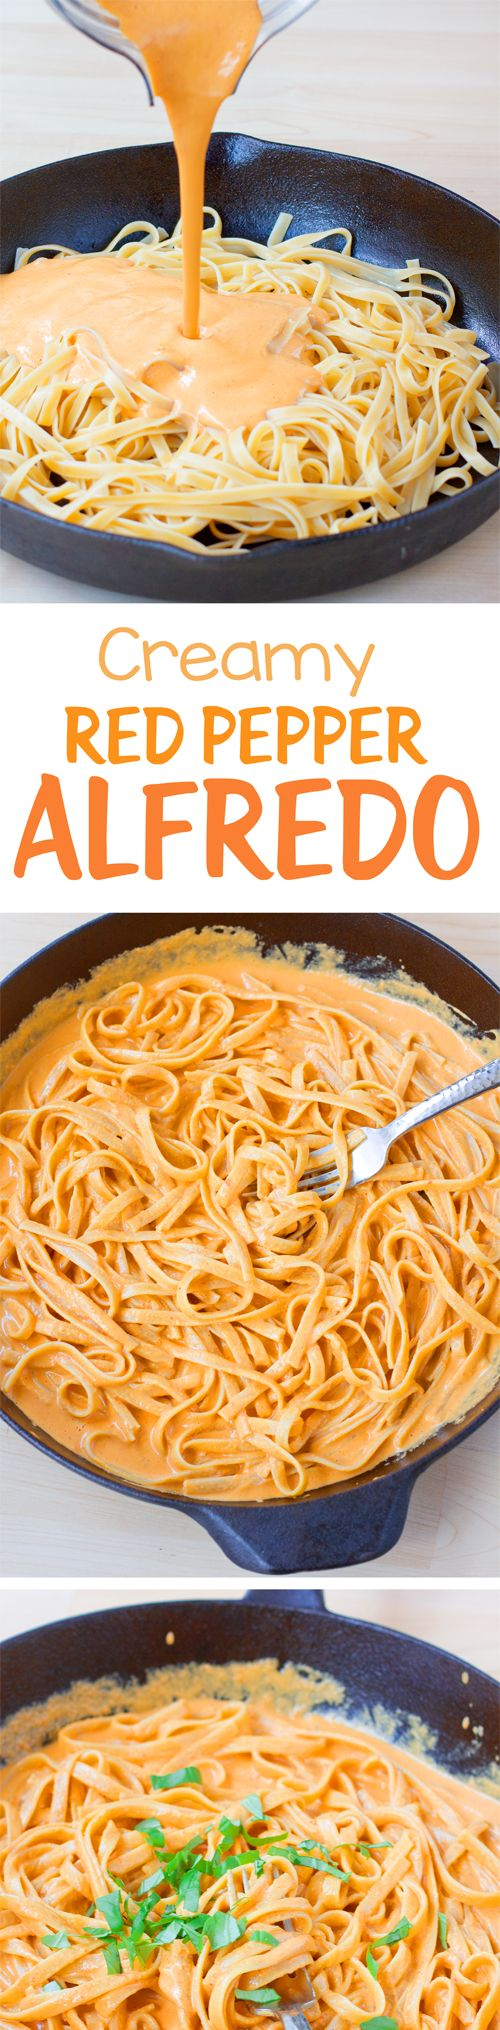 This has become one of our favorite dinners, and the creamy sauce is delicious. The vegan pasta recipe for red pepper alfredo is recommended!